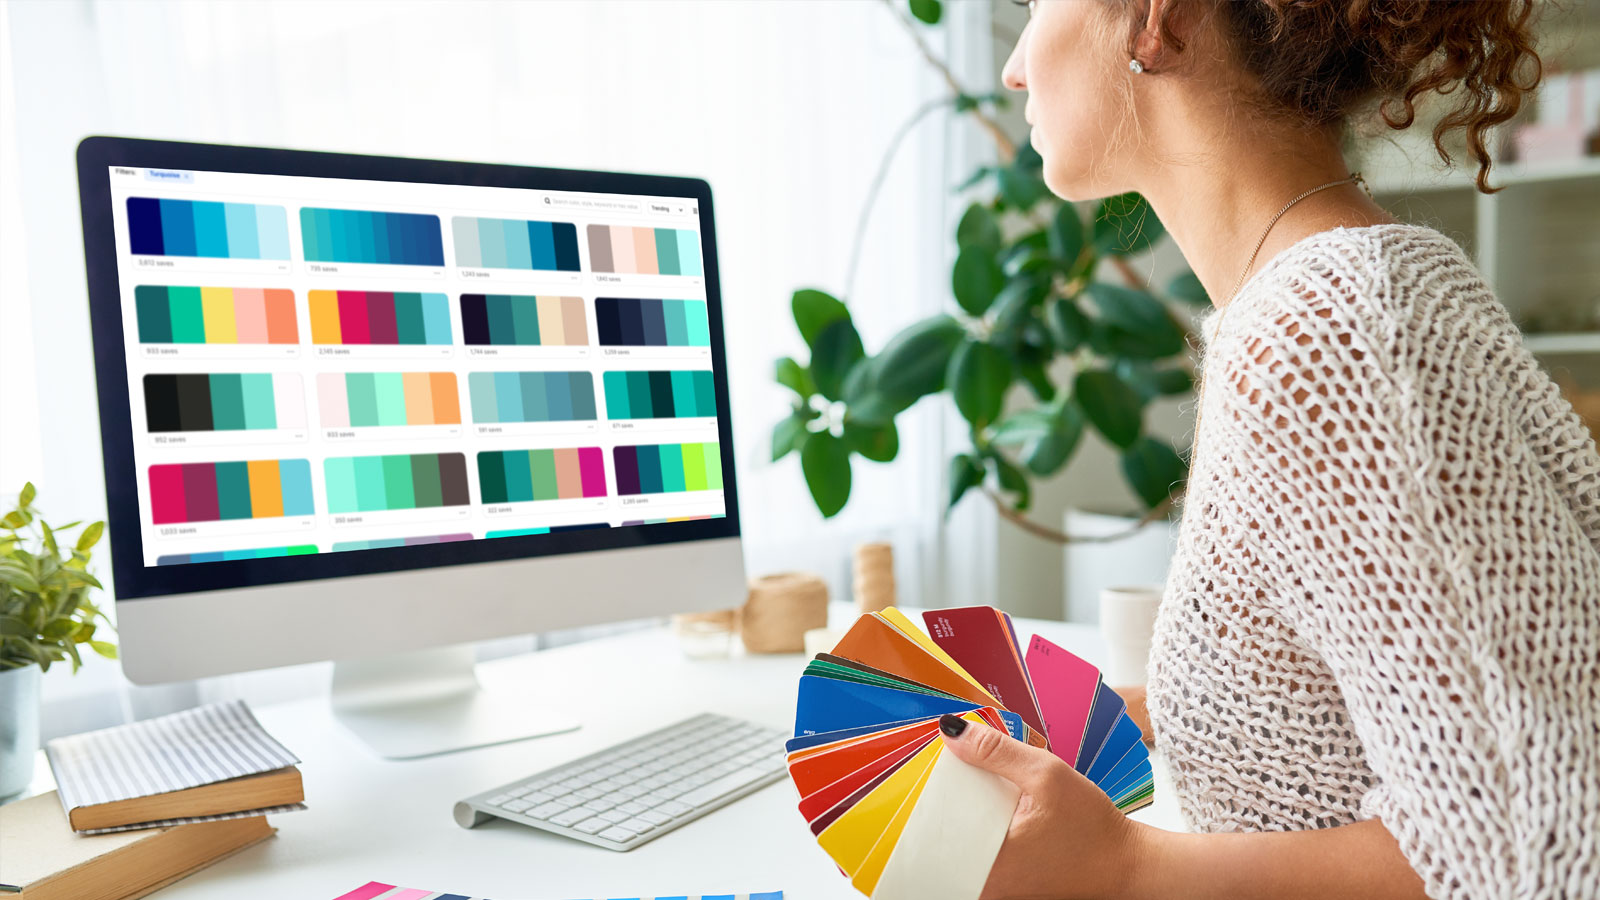 Steps to choosing the right colour for your brand and marketing.